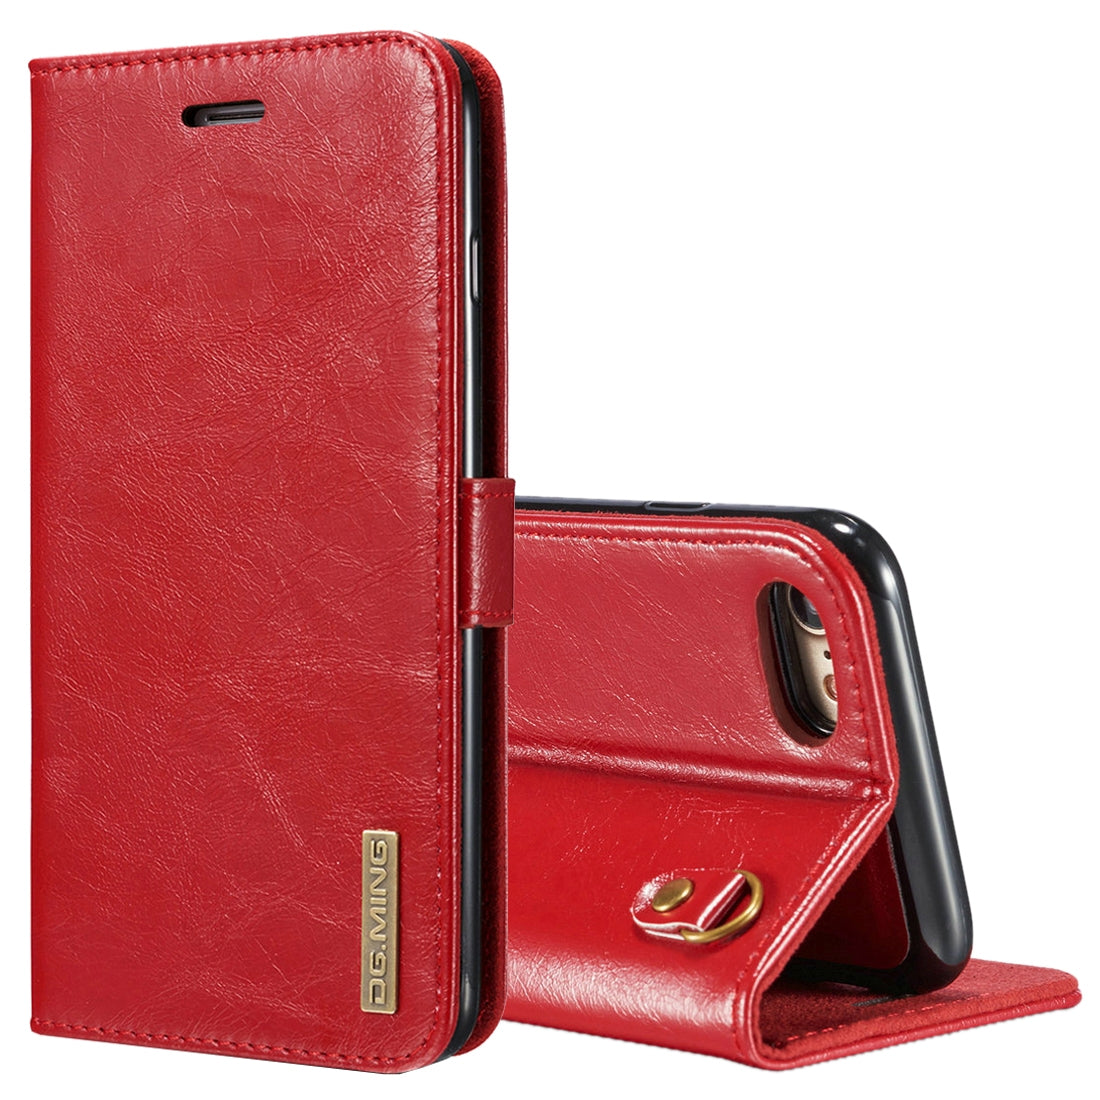 DG.MING for iPhone 8 & 7 Genuine Leather Horizontal Flip Detachable Magnetic Protective Case with Holder & Card Slots & Lanyard (Red)